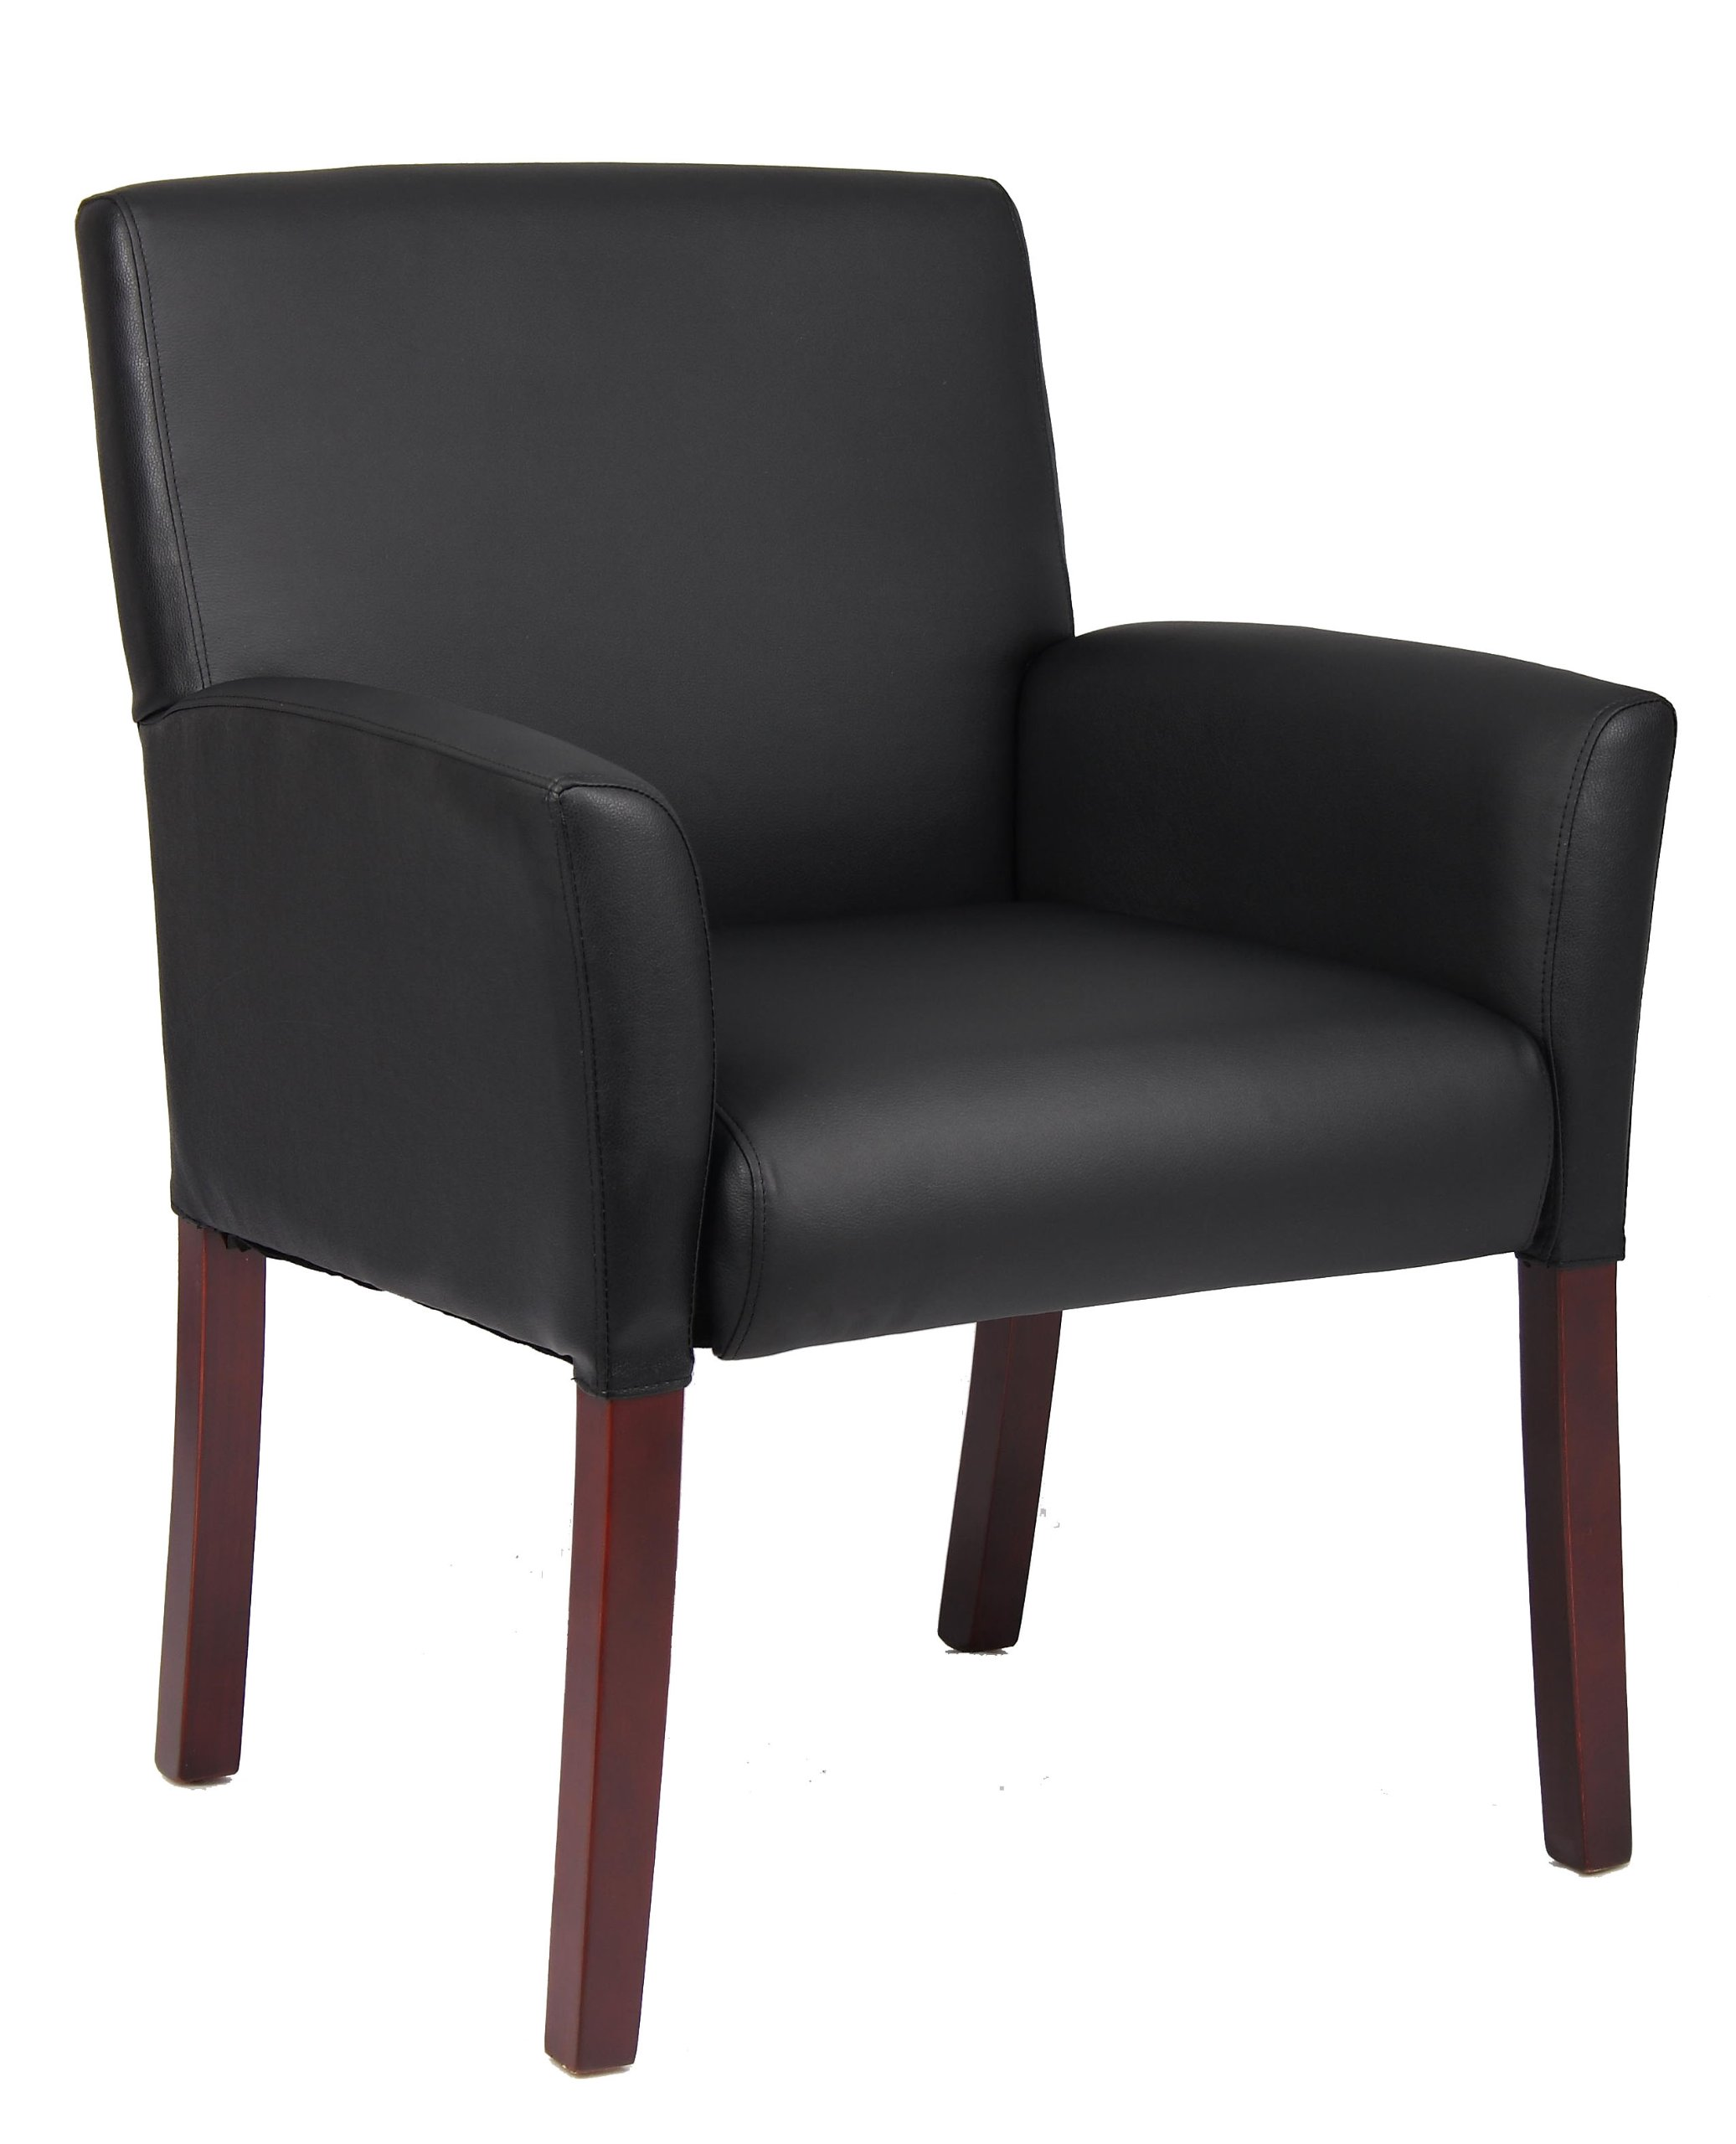 Boss Office Products Box Arm Guest Chair with Mahogany Finish in Black by Boss Office Products